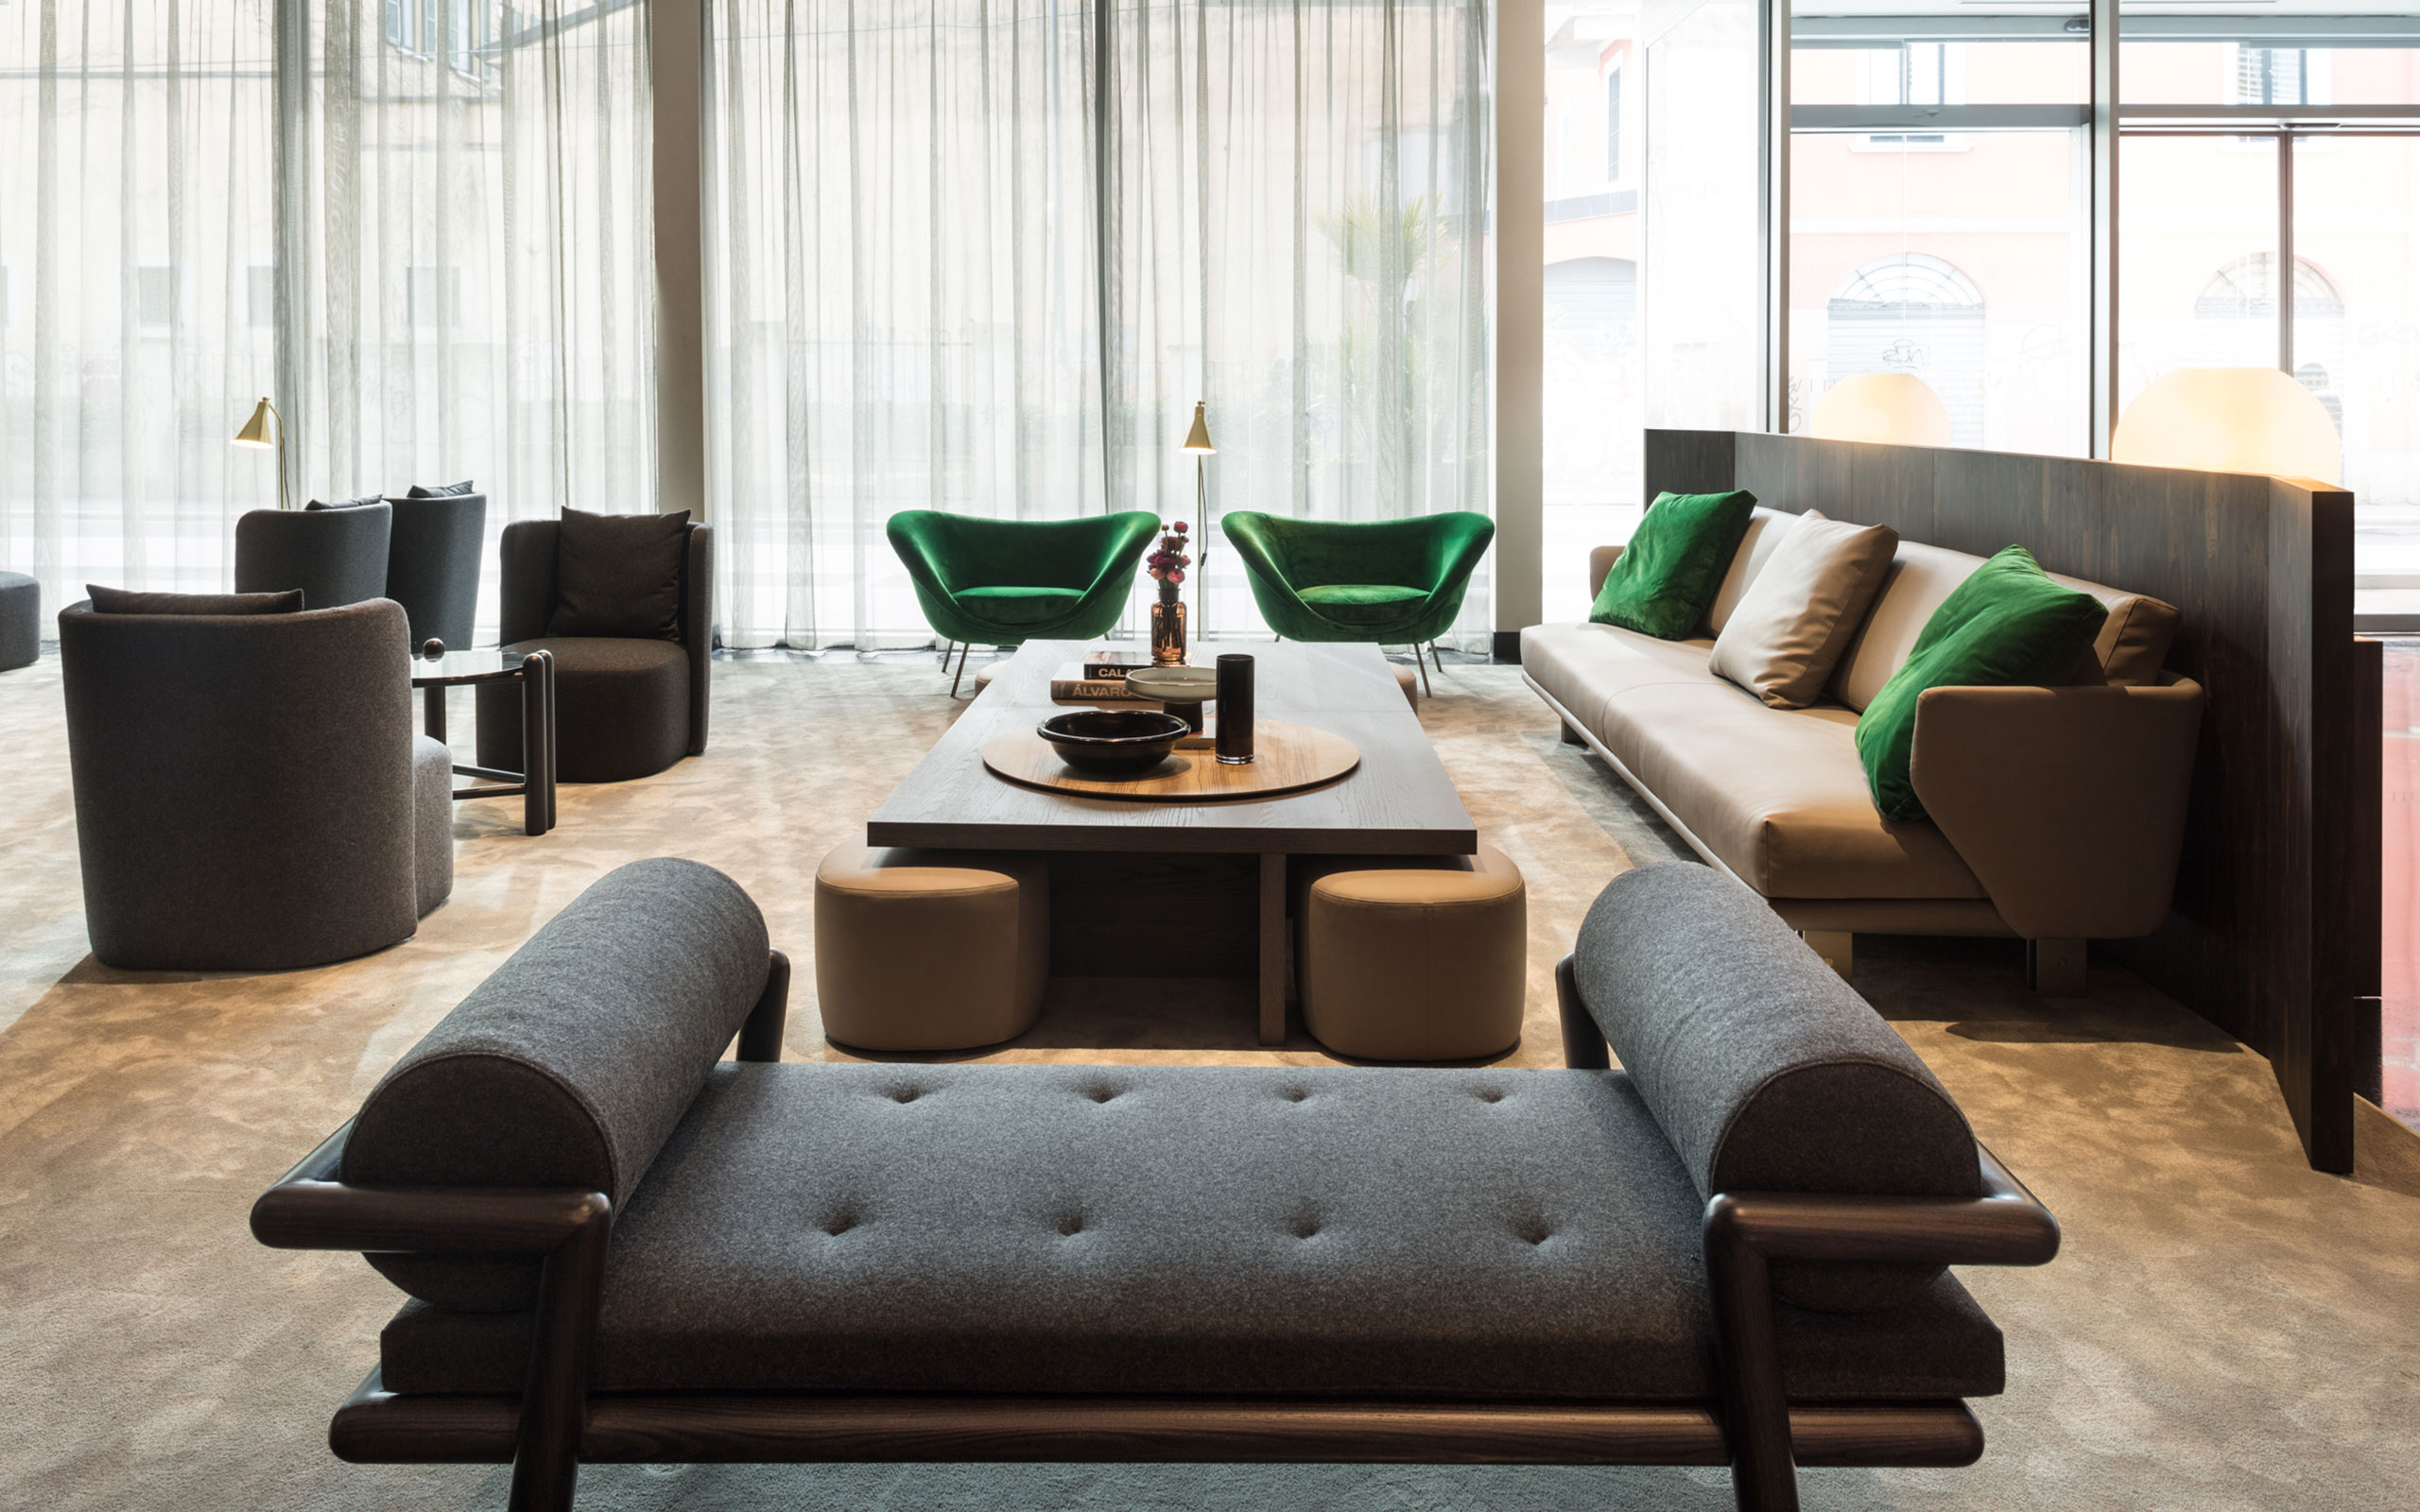 Travel guide: Milan's Must-stay Hotels